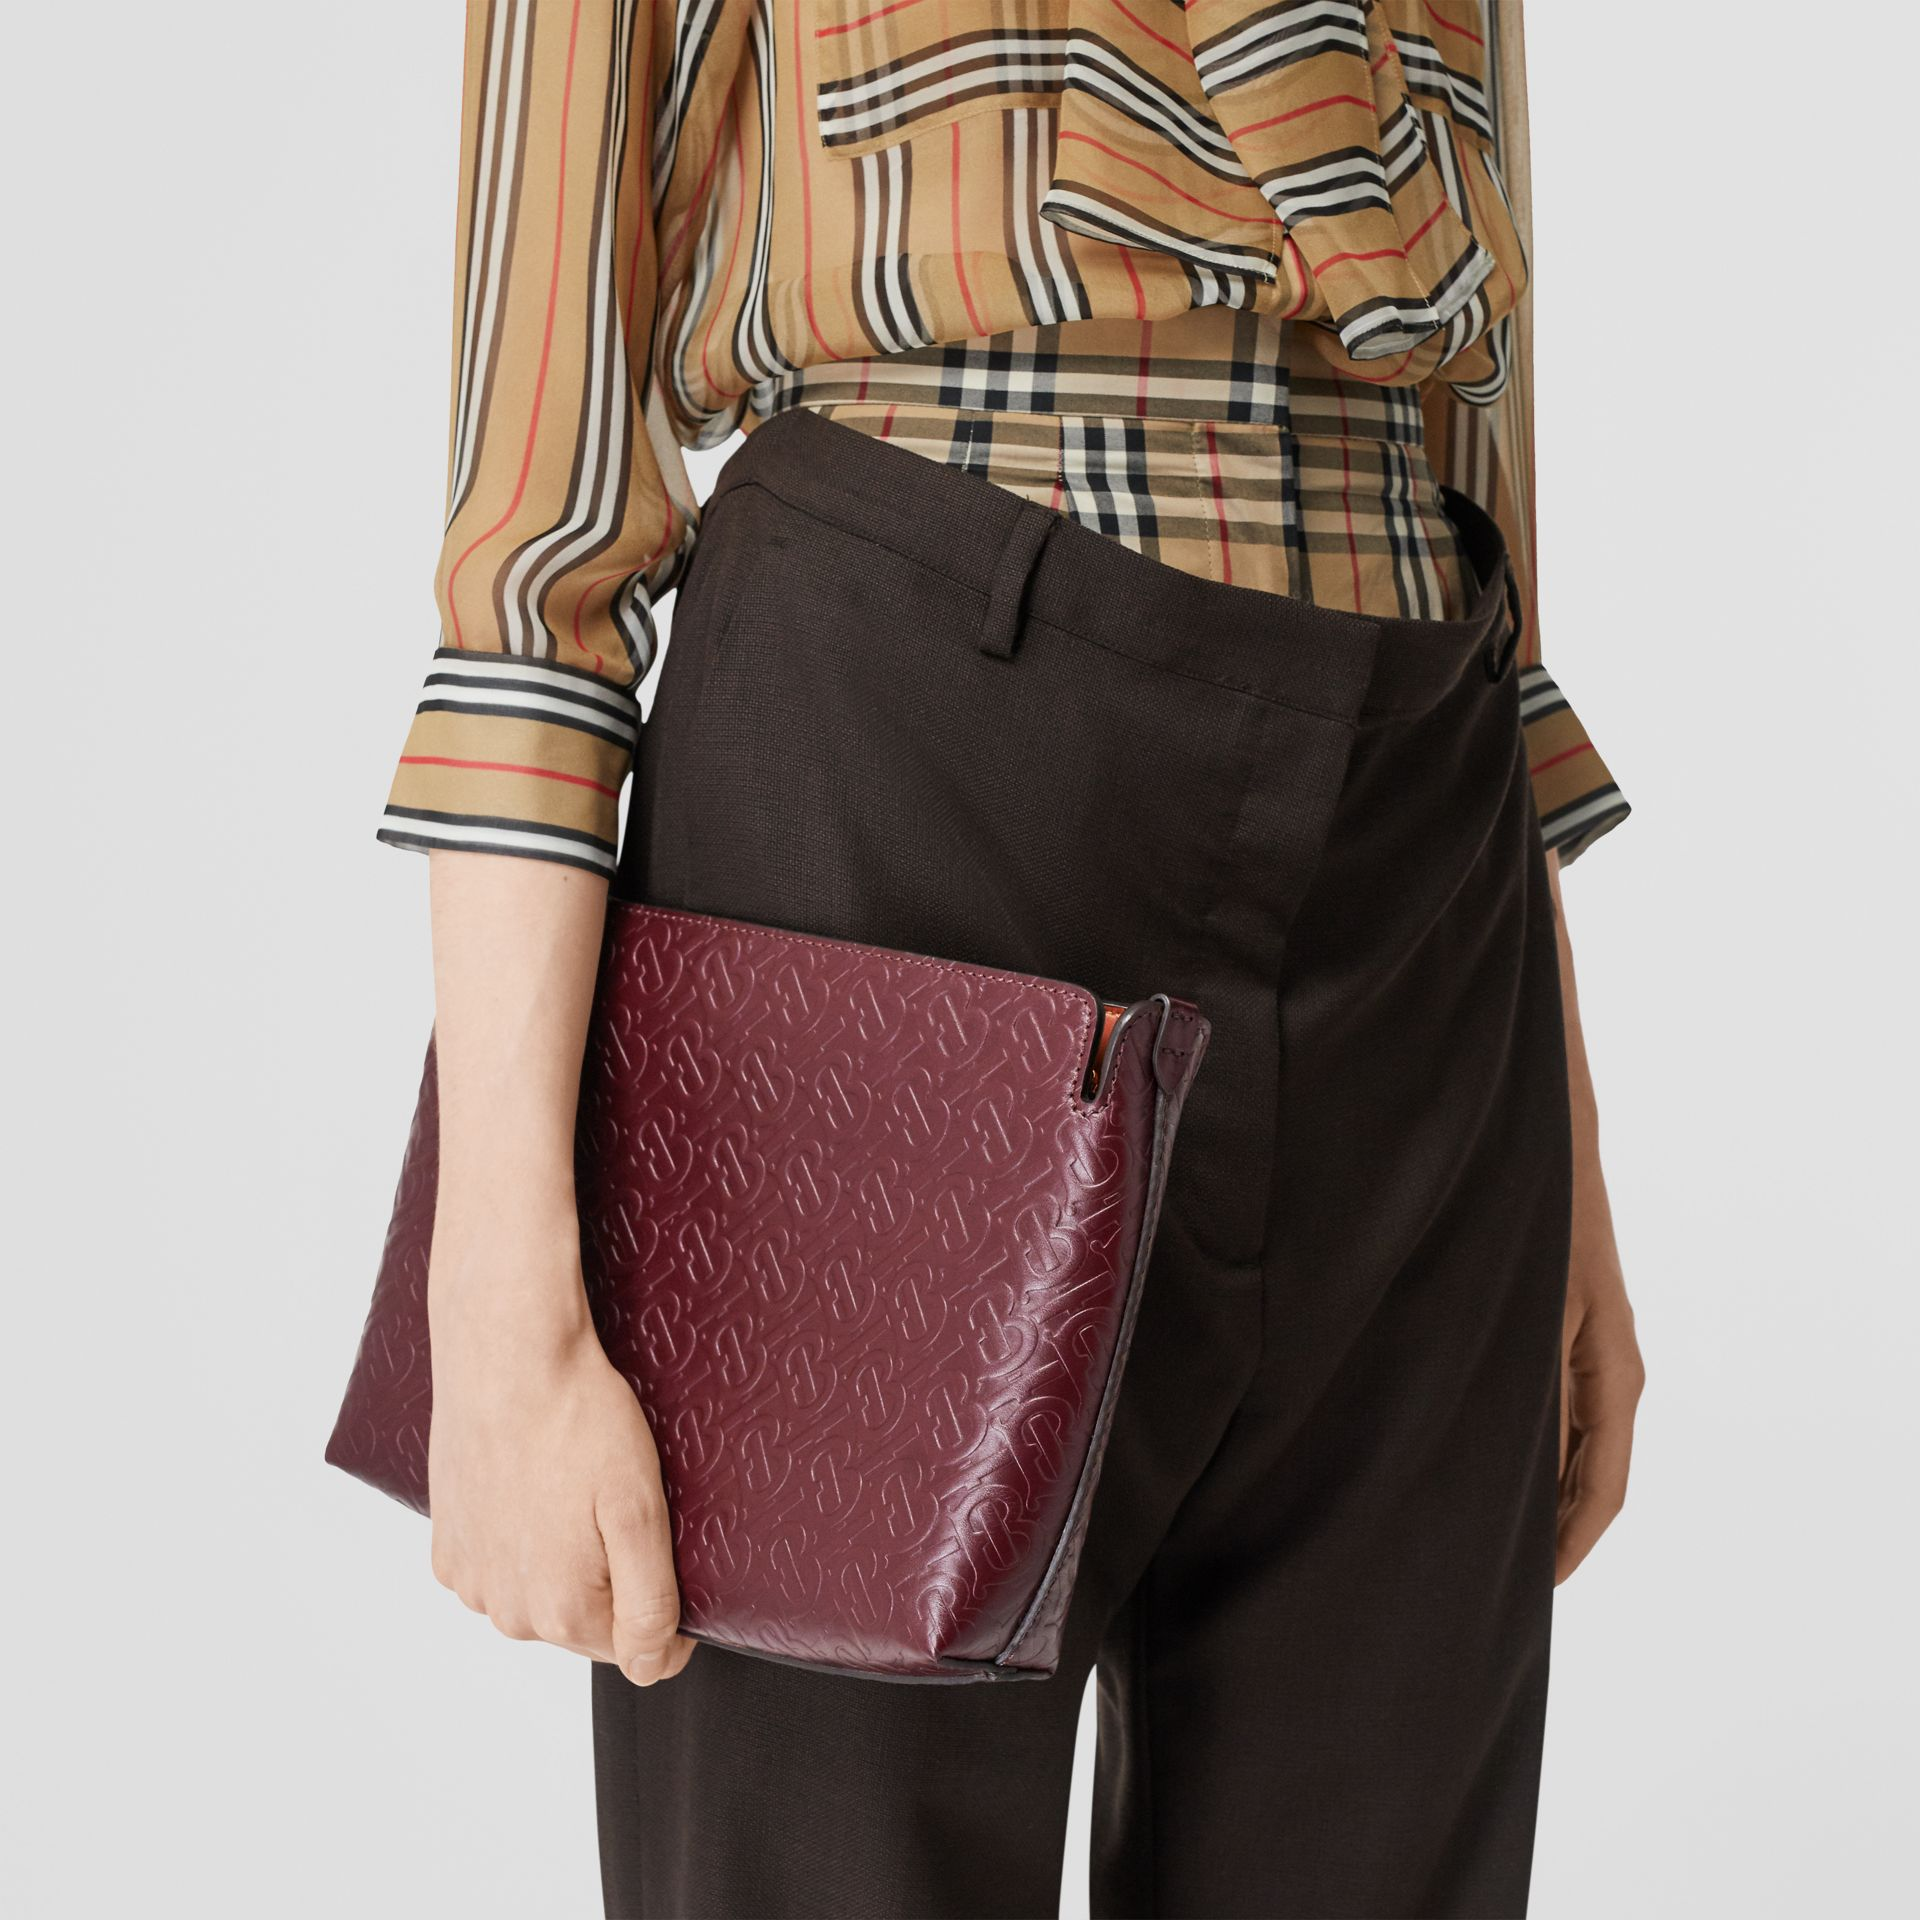 Medium Monogram Leather Clutch in Oxblood - Women | Burberry - gallery image 2